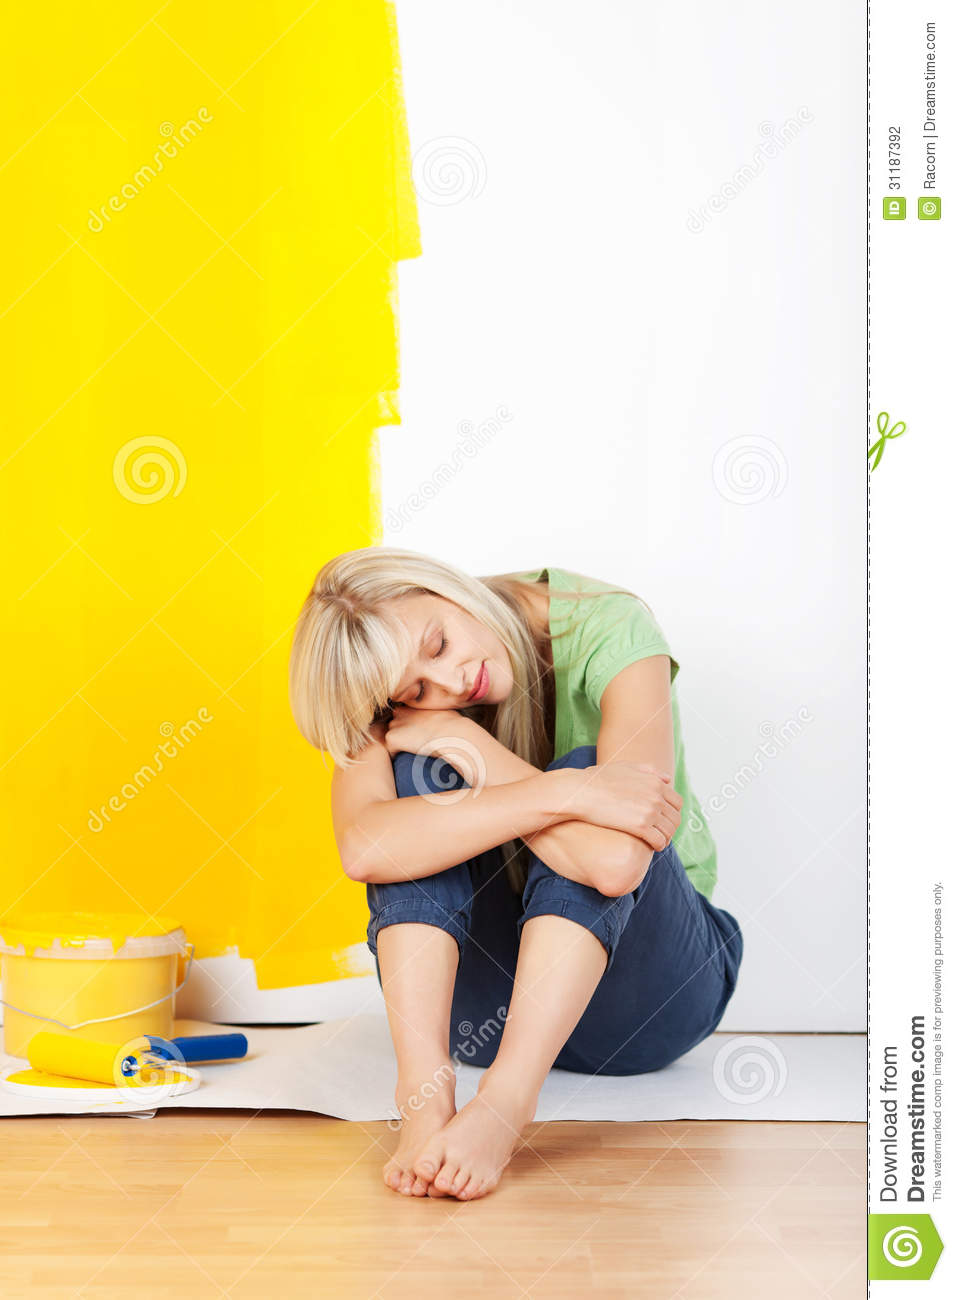 Painter And Decorator Prices >> Exhausted Woman Taking A Break From Decorating Stock Photography - Image: 31187392